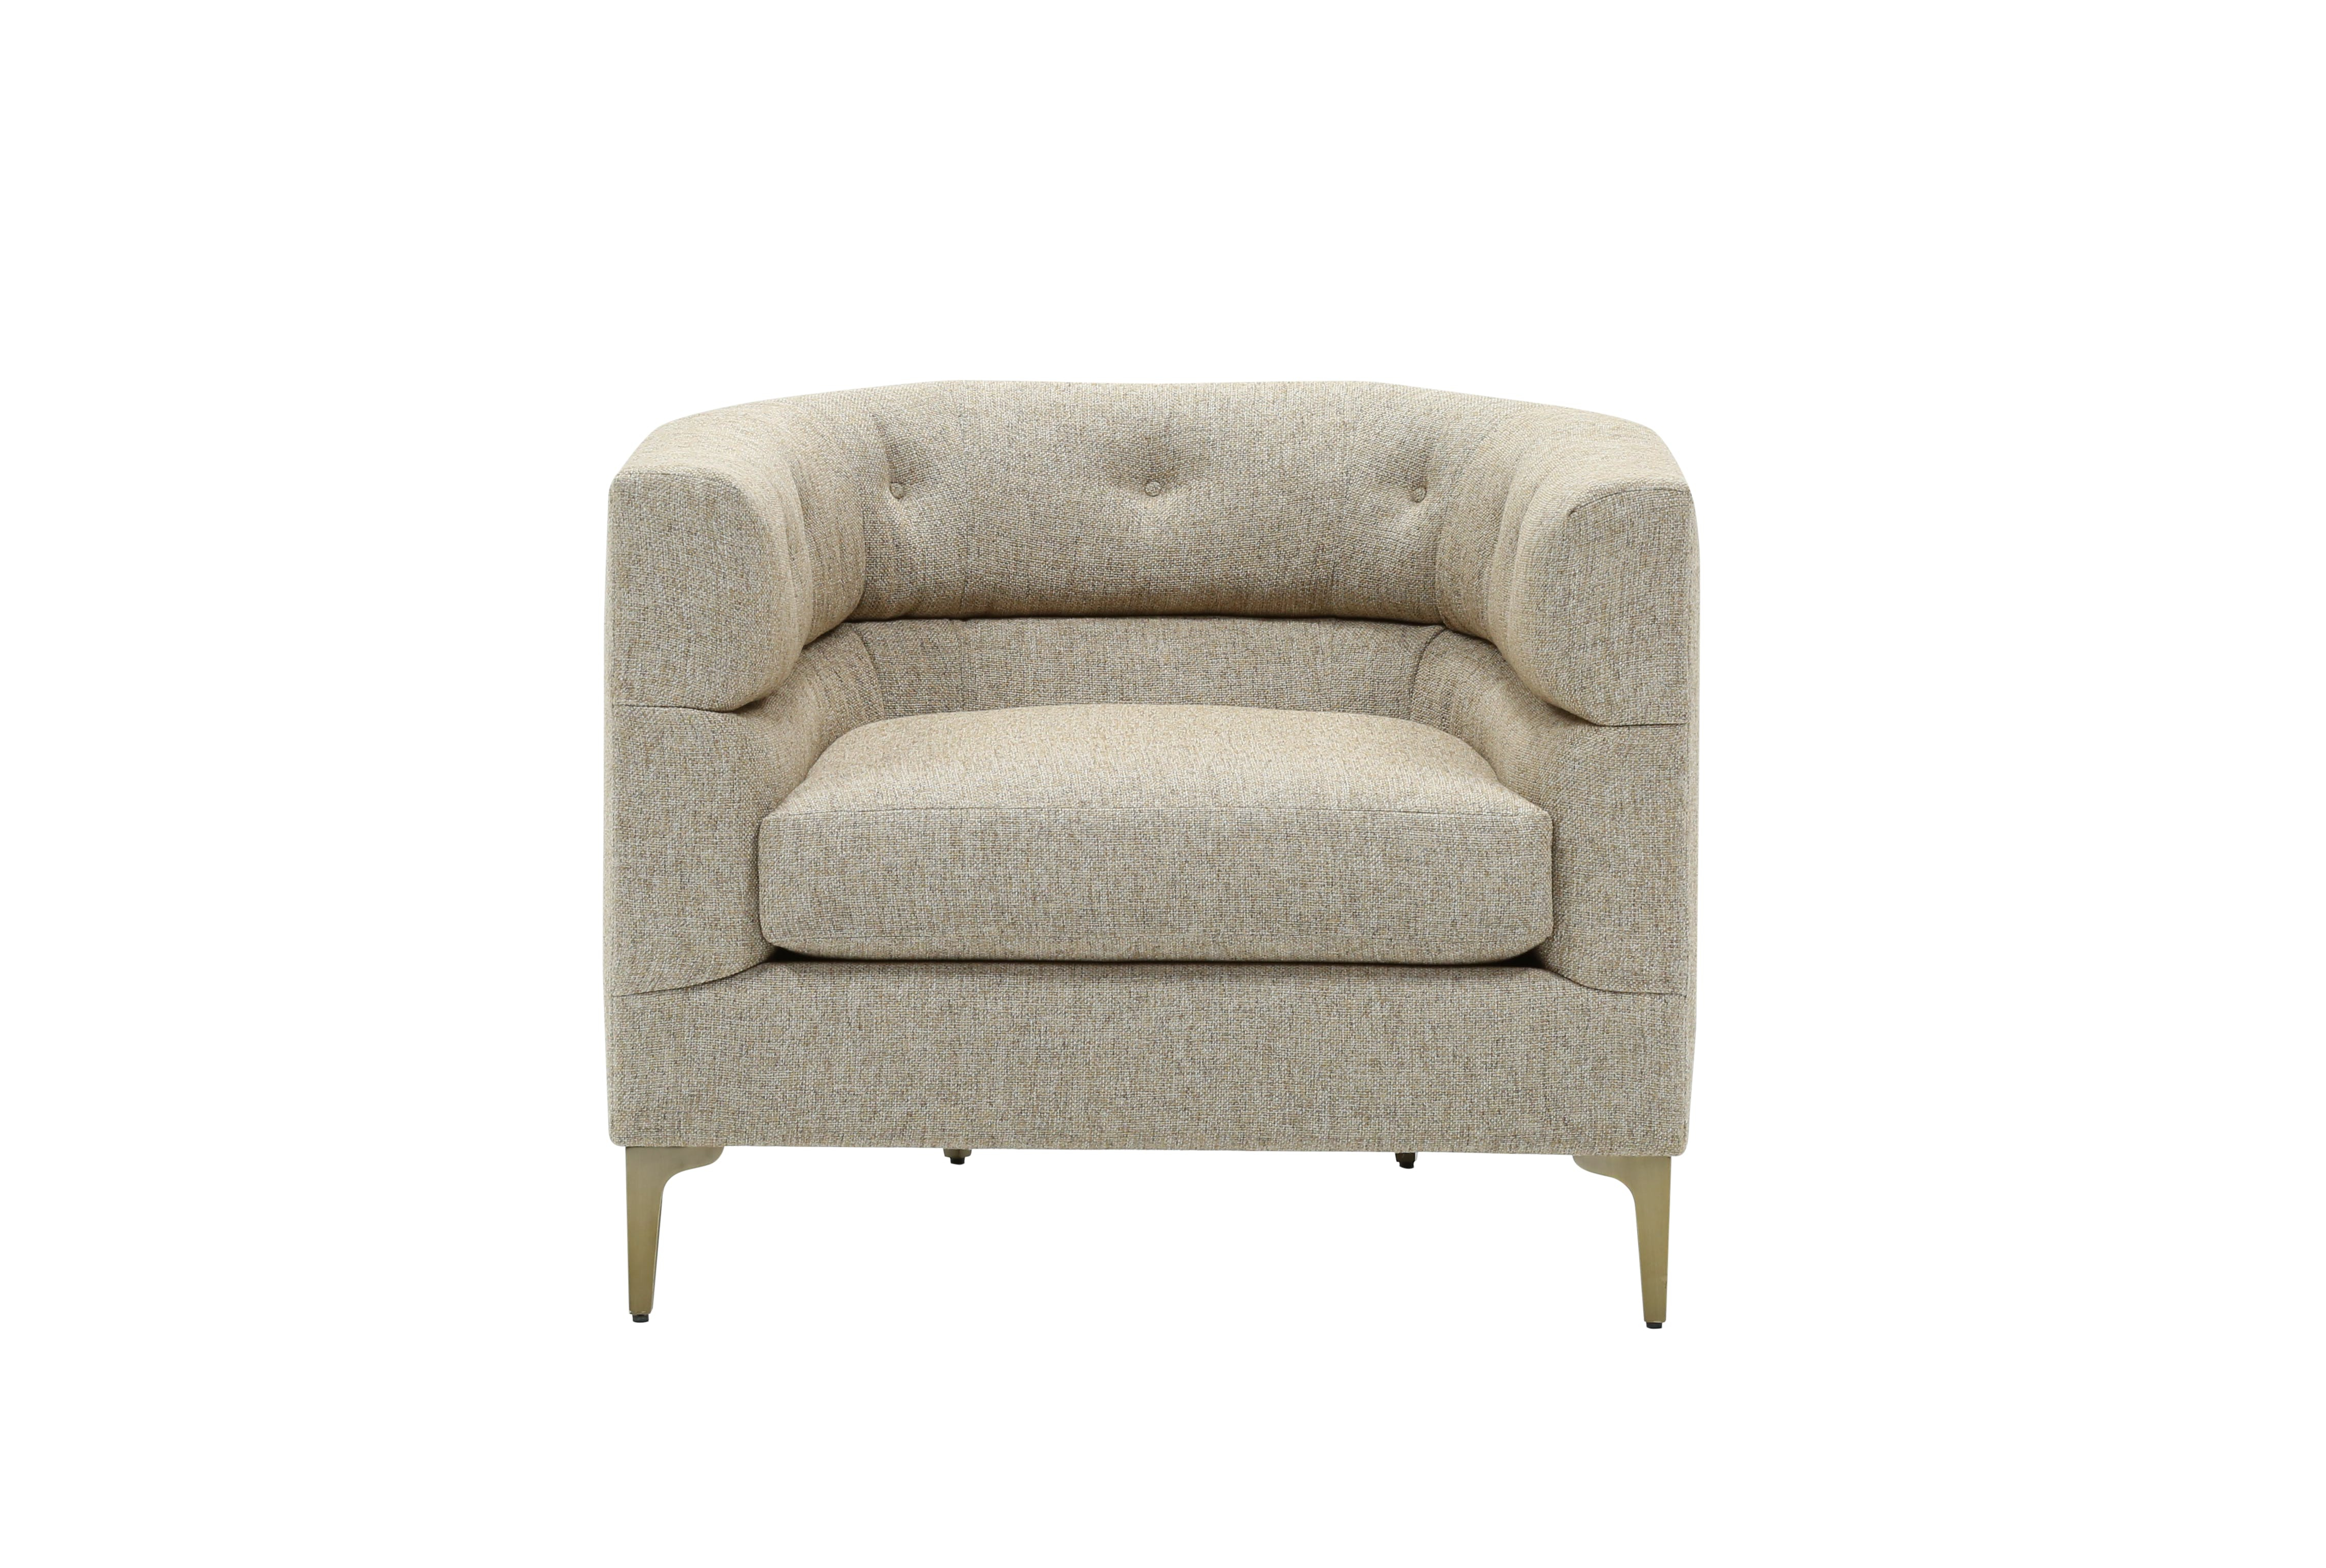 Nate Berkus Just Launched A Home Collection With Hubby Jeremiah Inside Liv Arm Sofa Chairs By Nate Berkus And Jeremiah Brent (Photo 3 of 20)